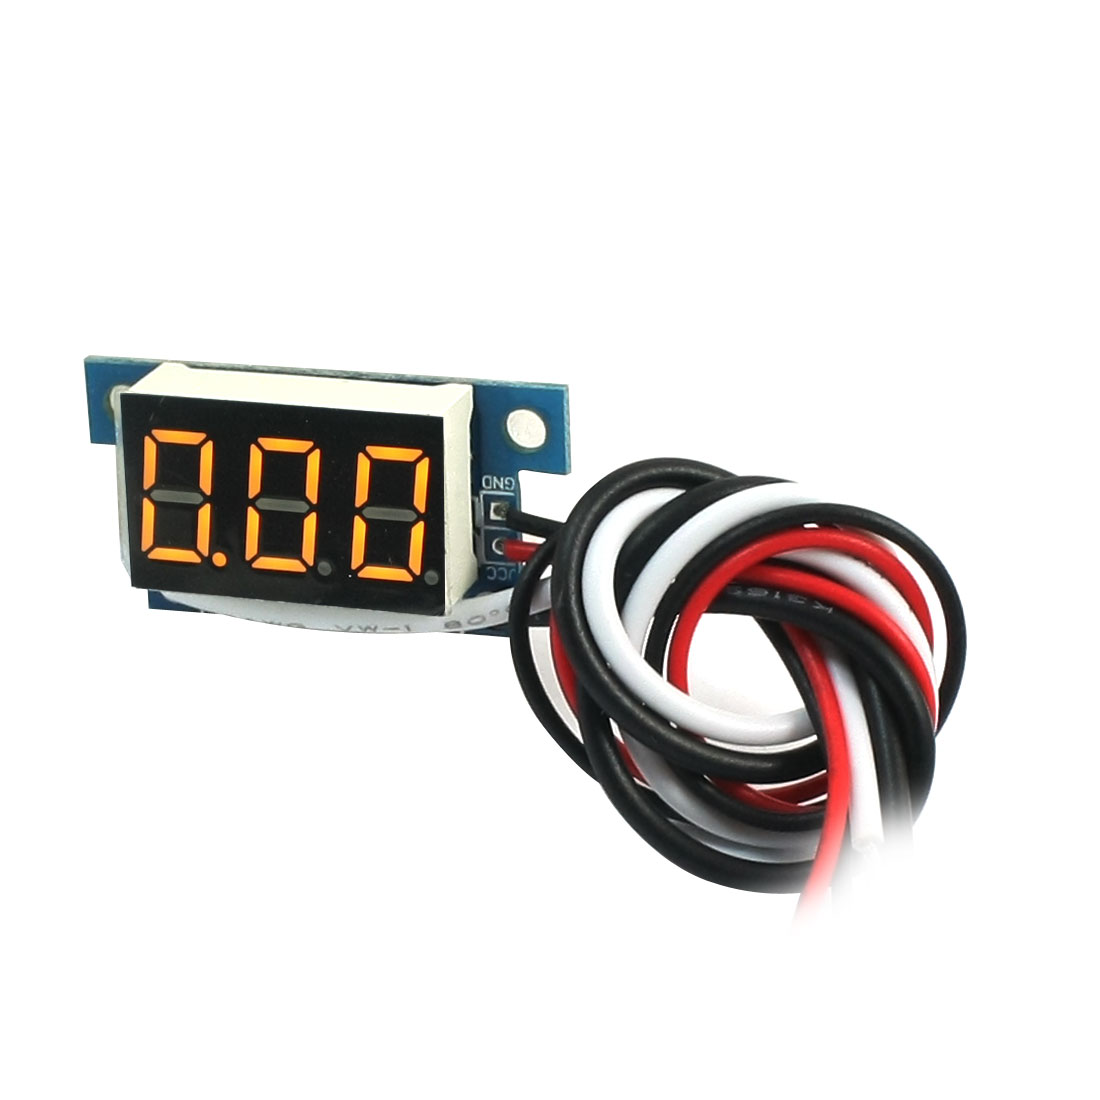 Digital DC 0-1A Yellow LCD Display Current Tester Gauge Panel Ammeter Meter